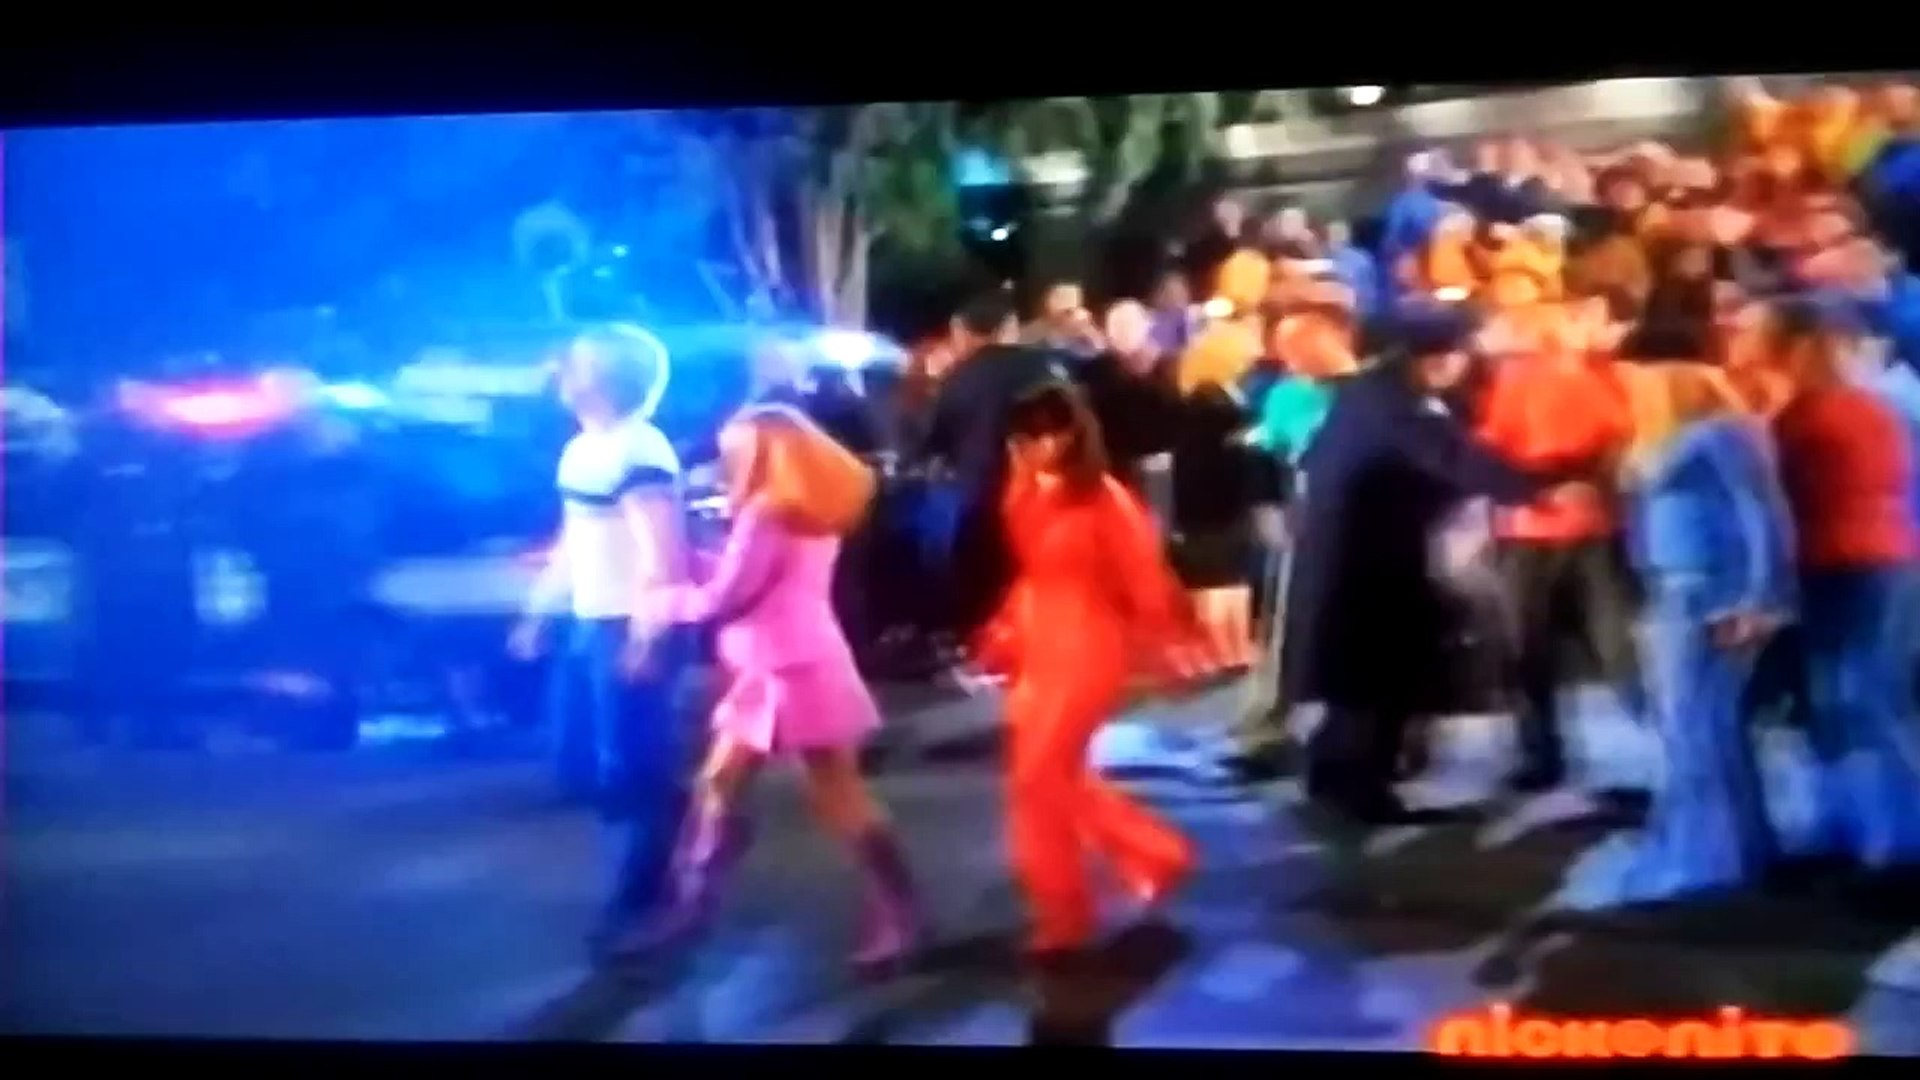 Scooby Doo 2 Daphne Confronts Heather Video Dailymotion